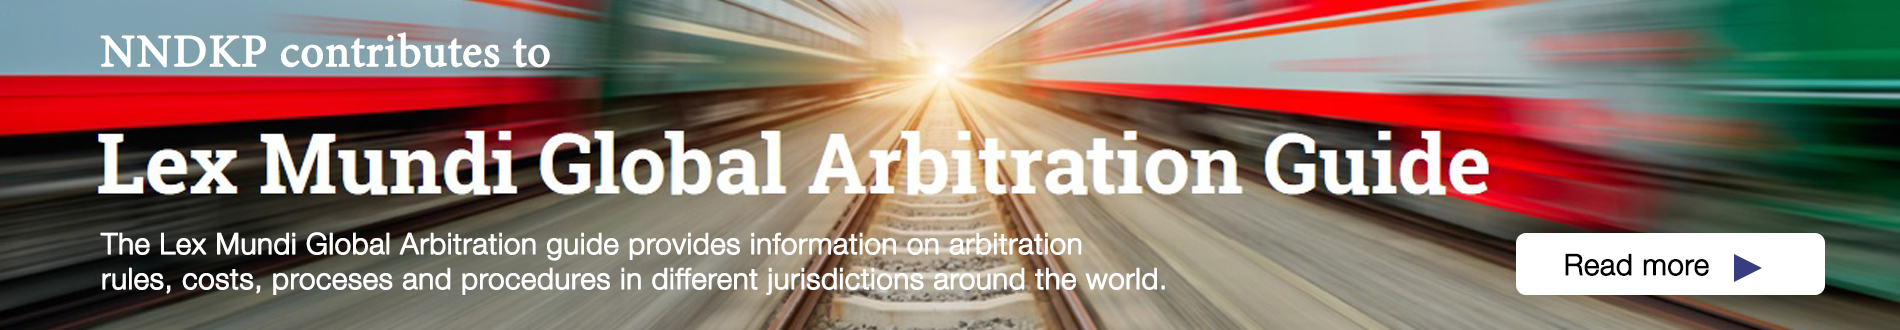 Lex-Mundi-Global-Arbitration-Guide